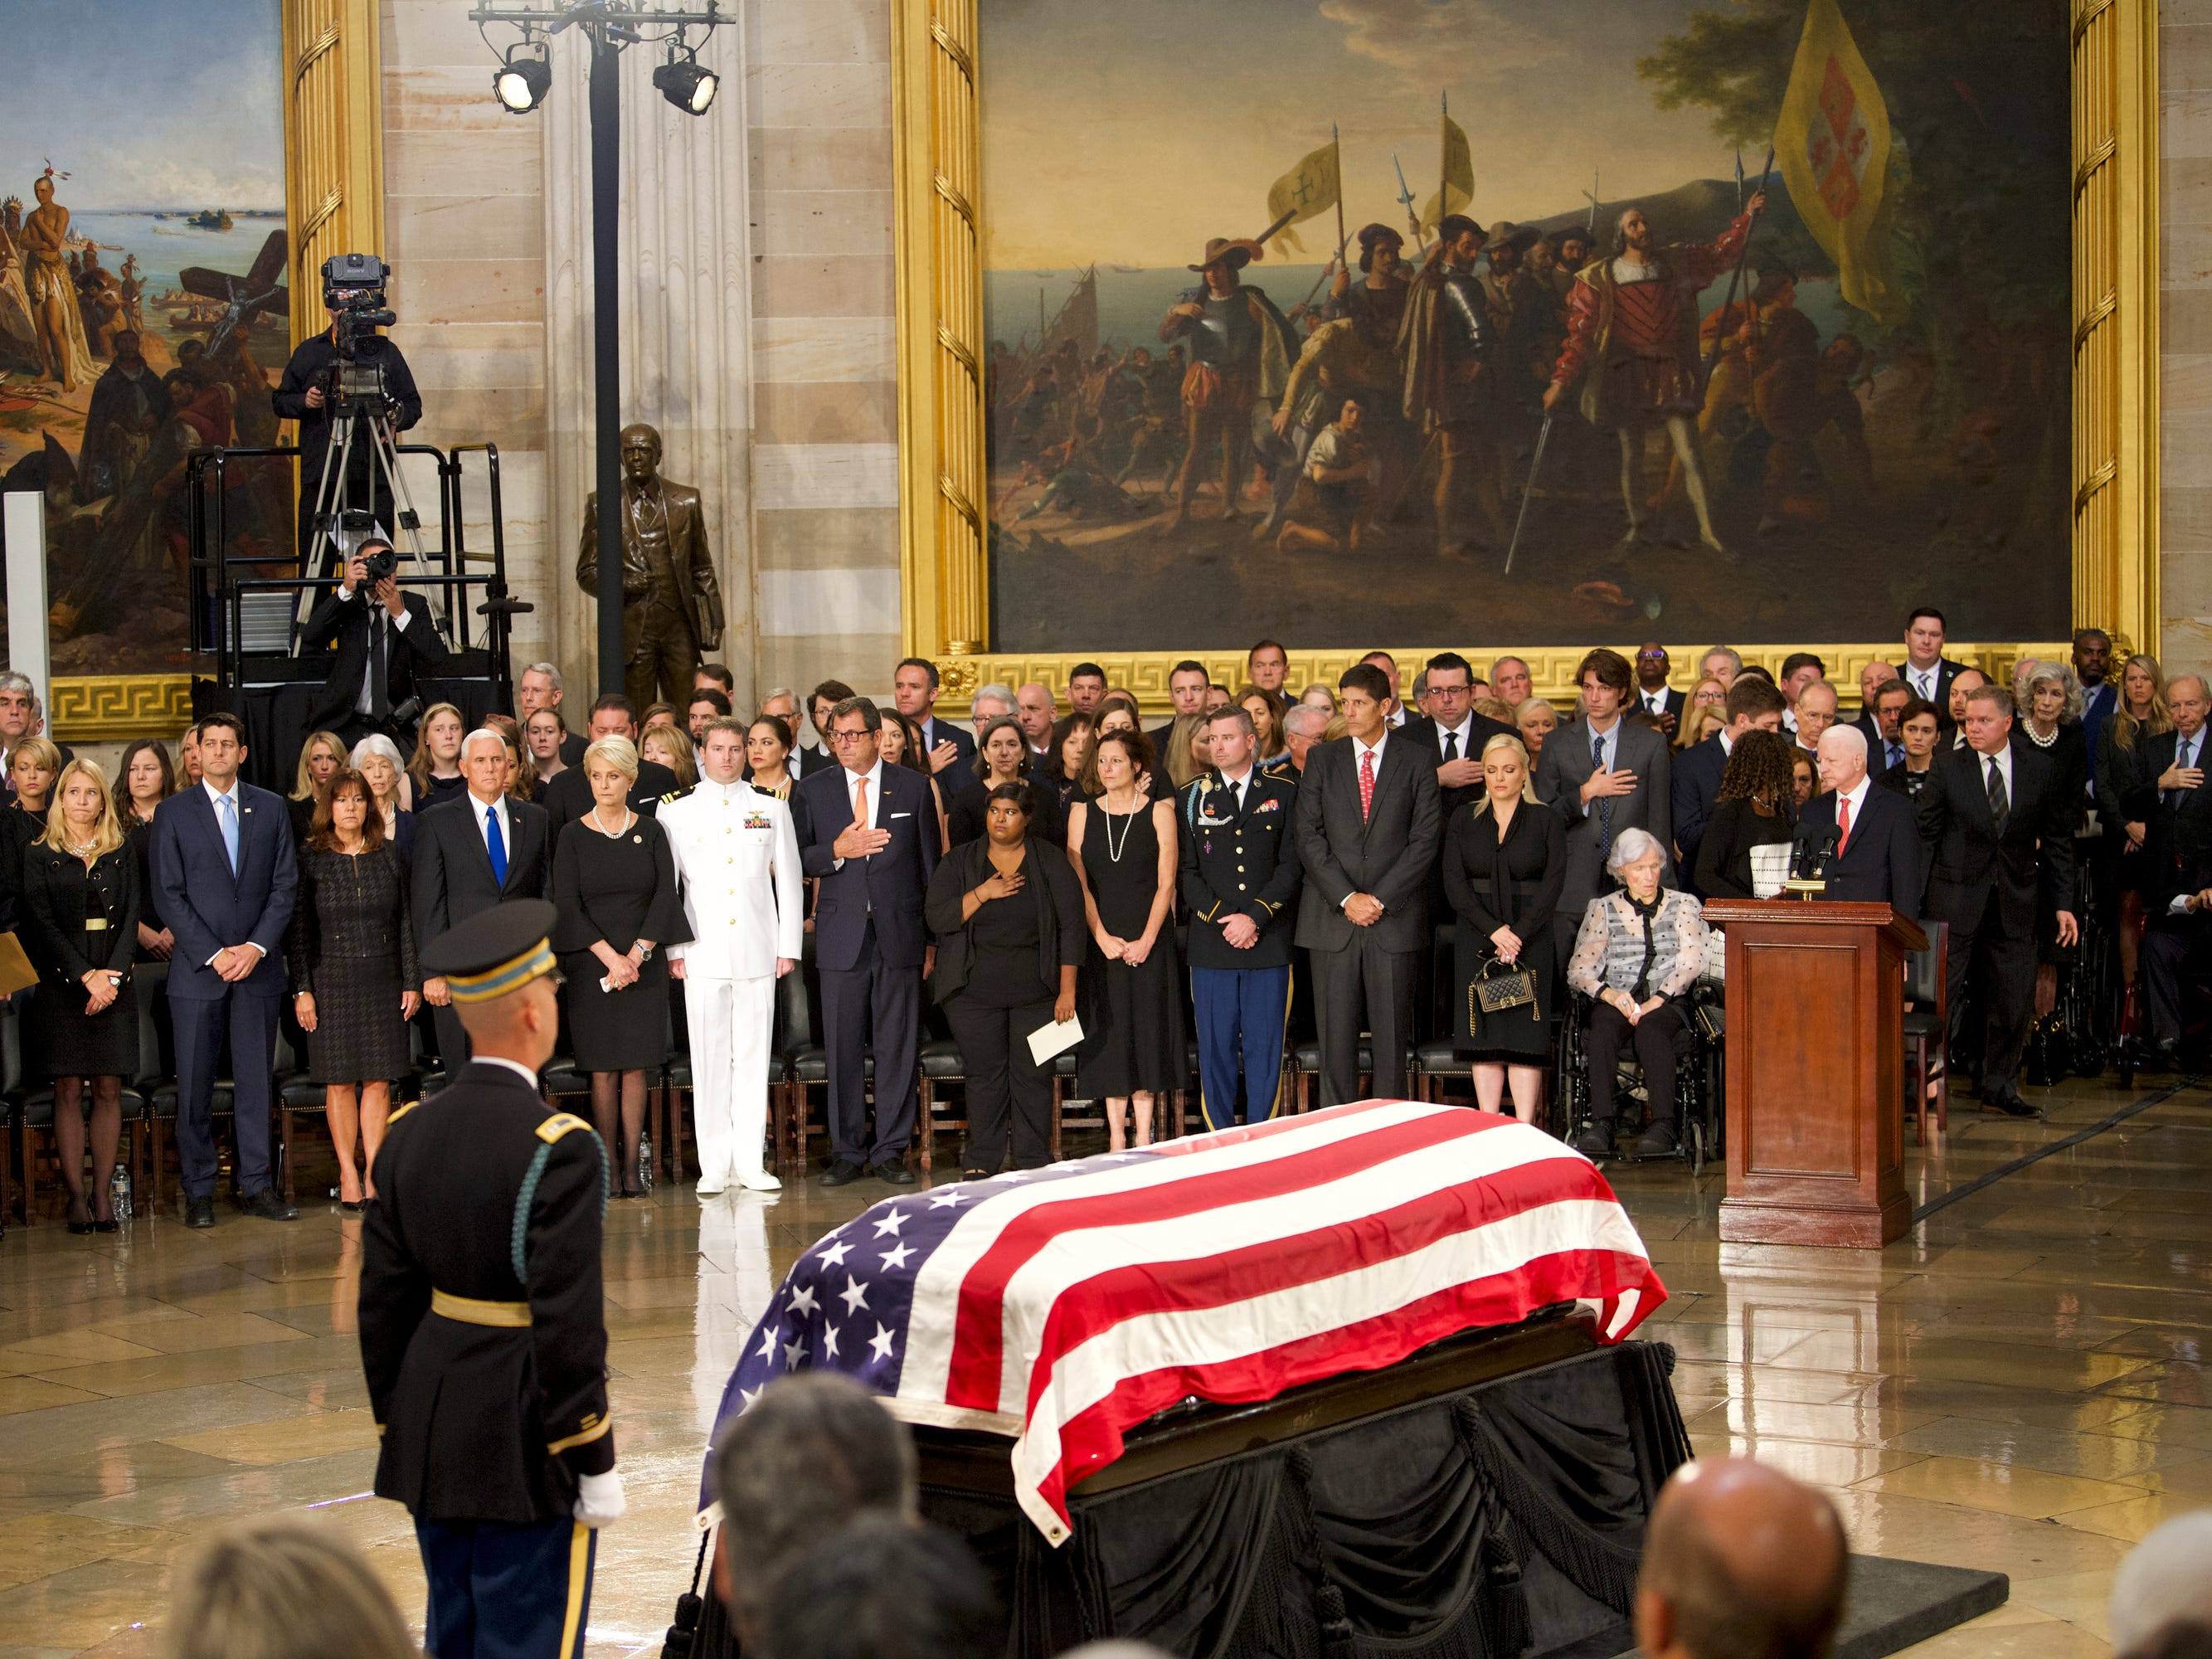 8/31/18 10:53:59 AM -- Washington, DC, U.S.A  -- The body of John McCain lies in state at the U.S. Capitol in Washington on Aug. 31, 2018 in Washington. Sen. McCain died on Aug. 25. --    Photo by Jasper Colt, USA TODAY Staff ORG XMIT:  JC 137436 McCain U.S. Capi 8/31/2018 (Via OlyDrop)